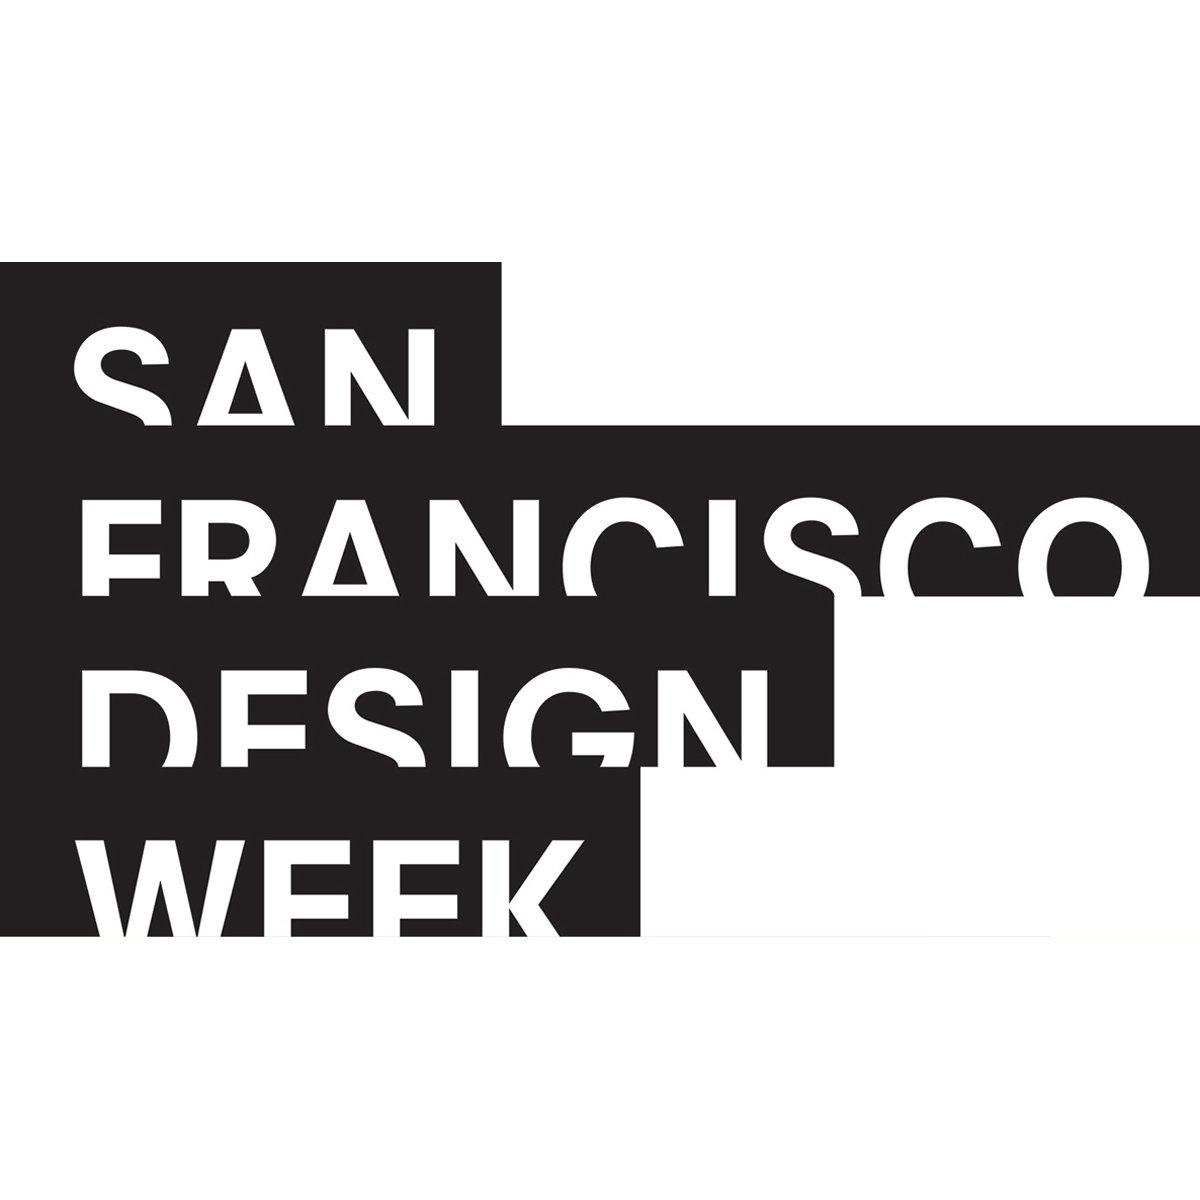 San francisco design week 2017 question everything for Design week 2017